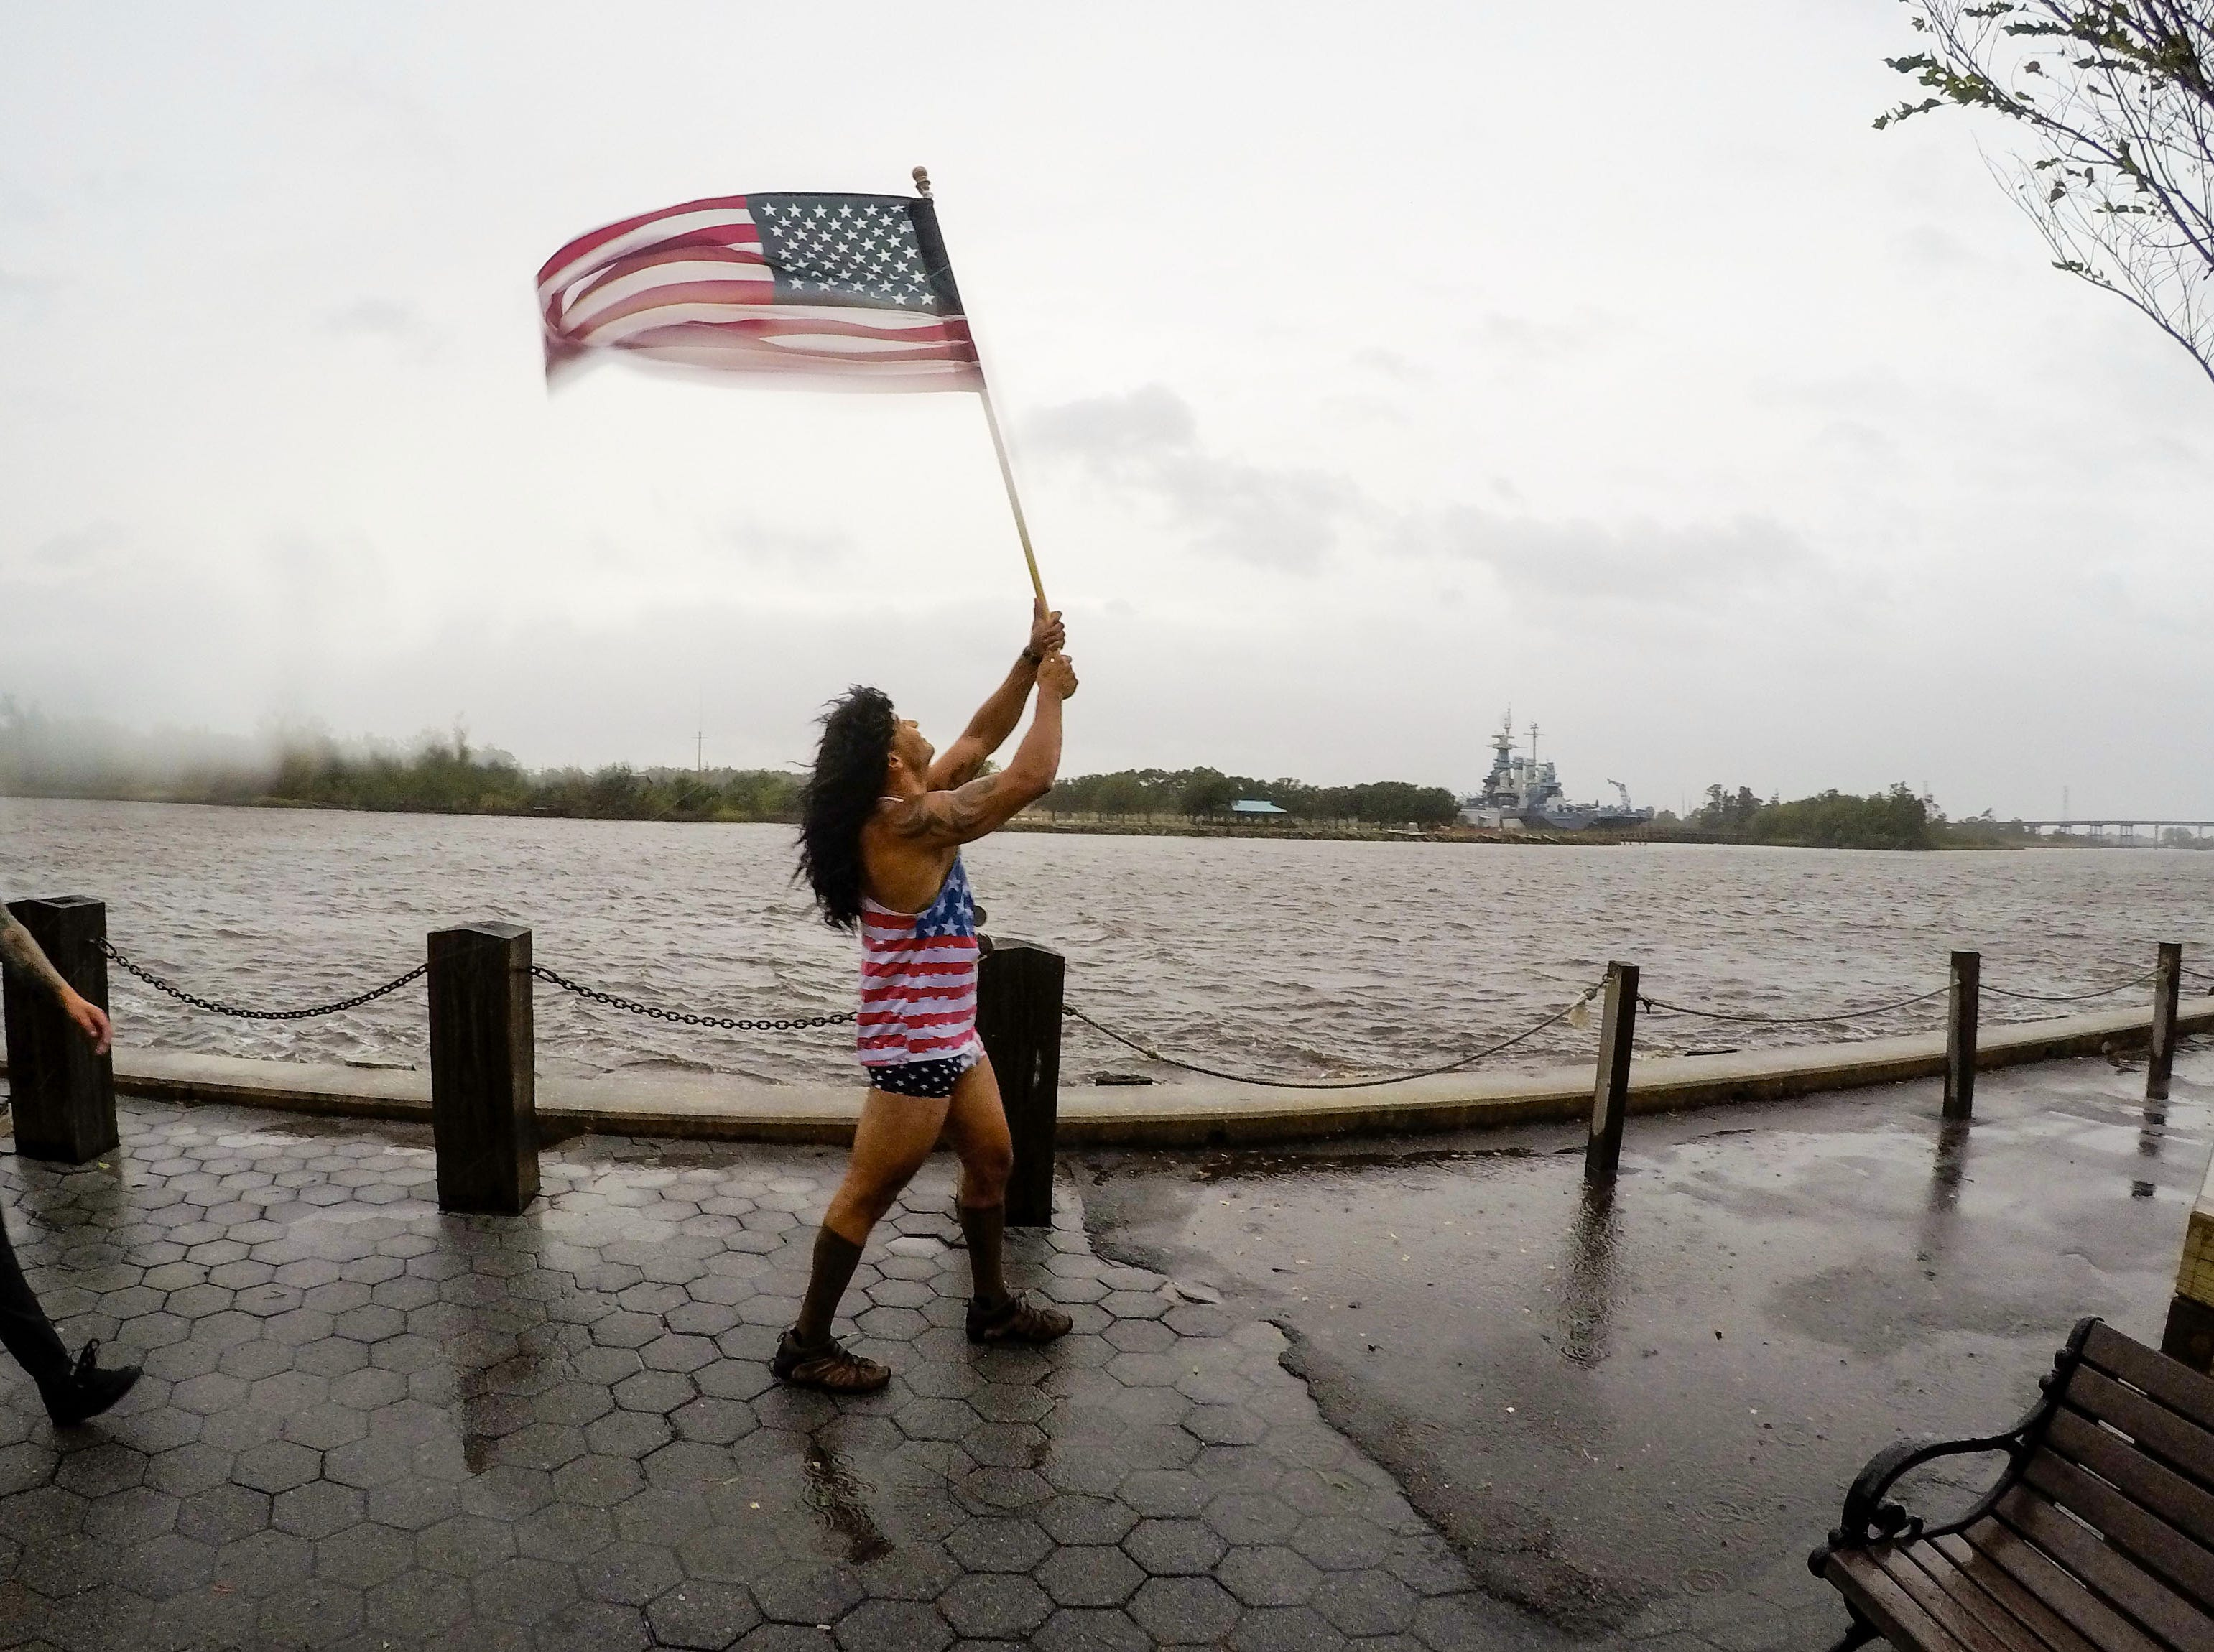 Jeff Egyp carries a United States flag in windy conditions along the Cape Fear River in downtown Wilmington, North Carolina on Thursday, September 13, 2018. (Ken Ruinard / Greenville News / Gannett USA Today Network / 2018 )